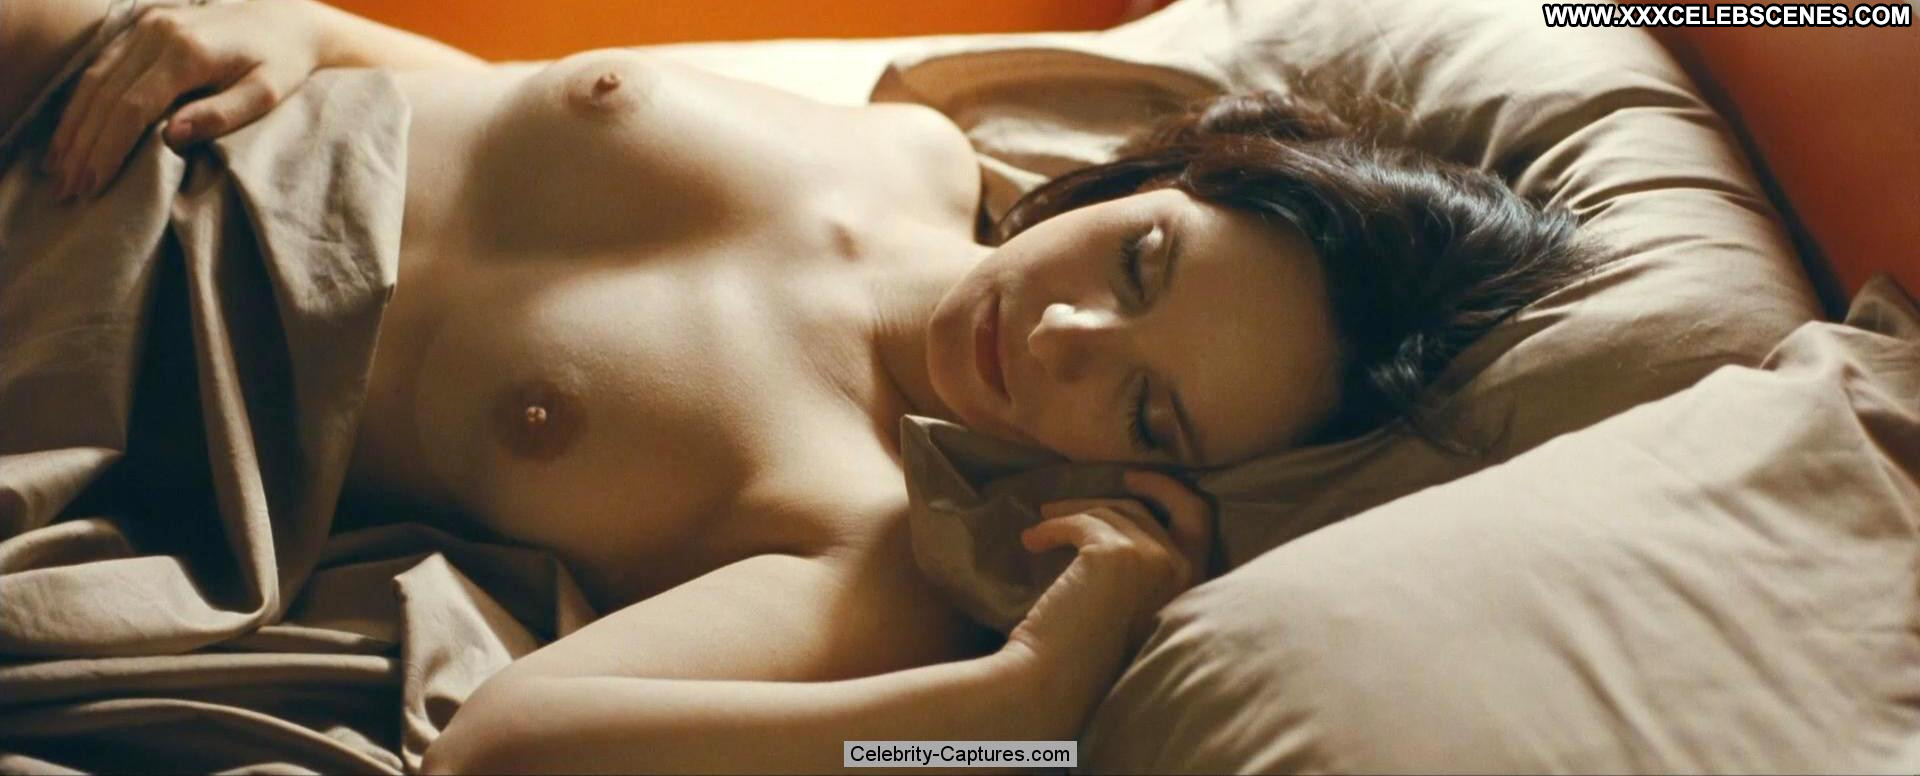 Amanda peet nude scene in togetherness scandalplanetcom